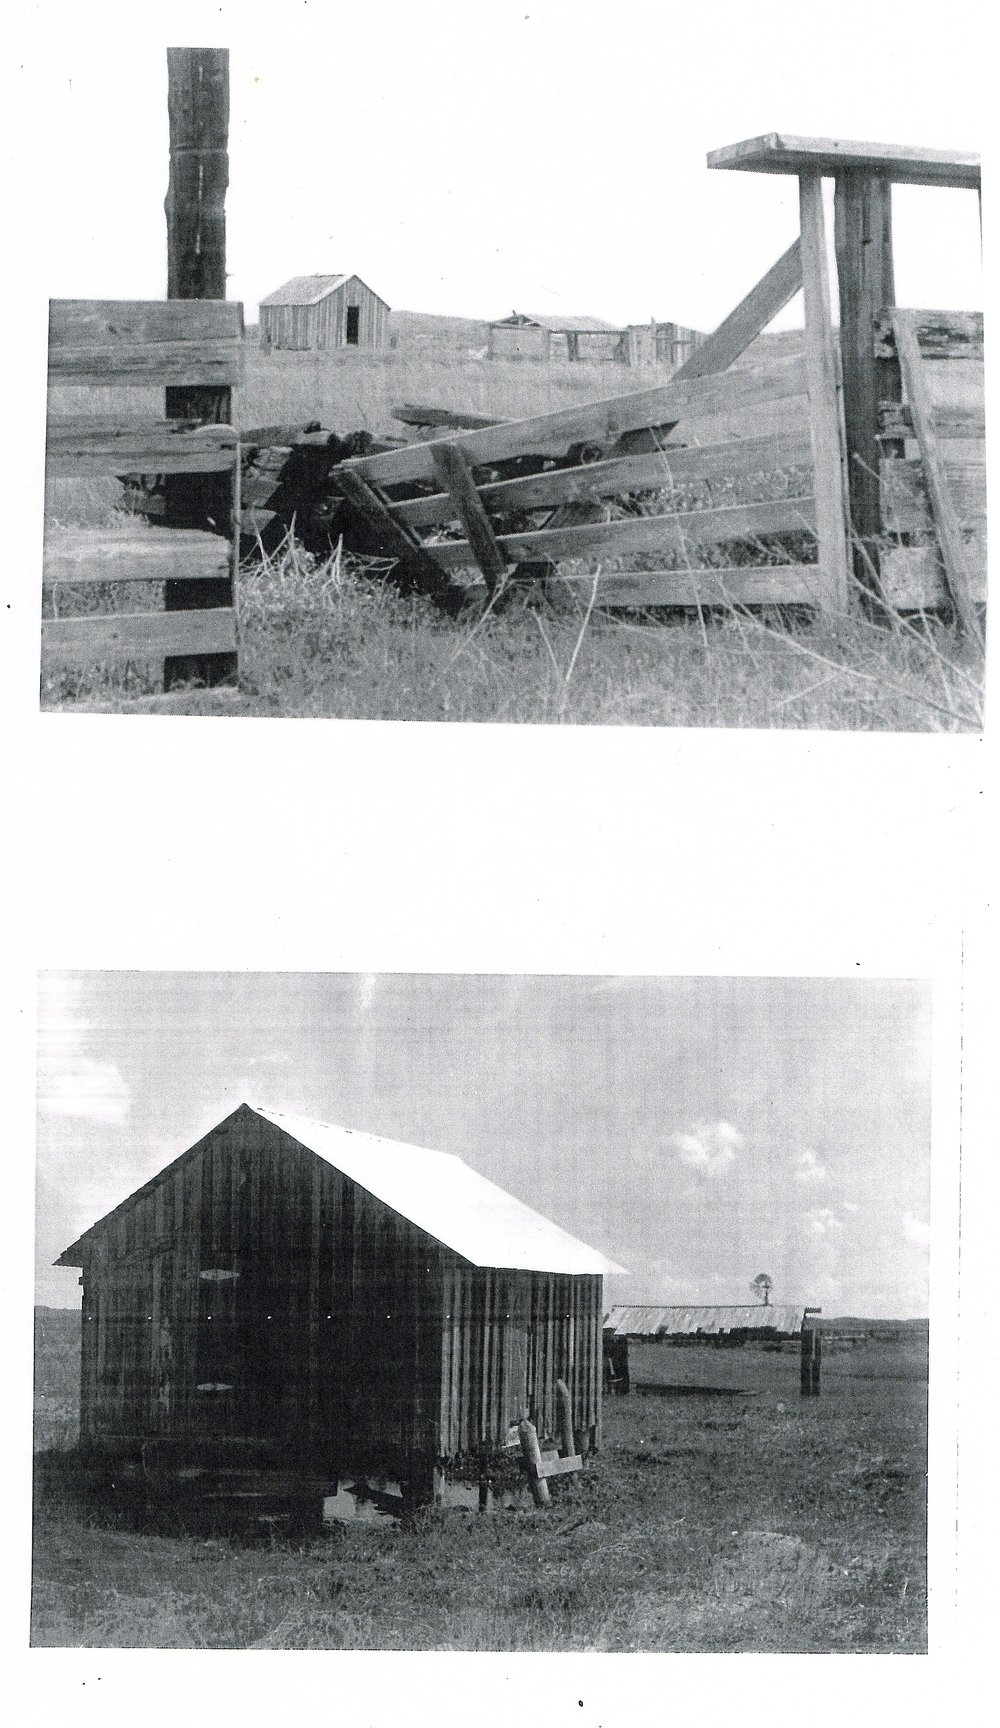 The old Novillo bunkhouse and linecamp.